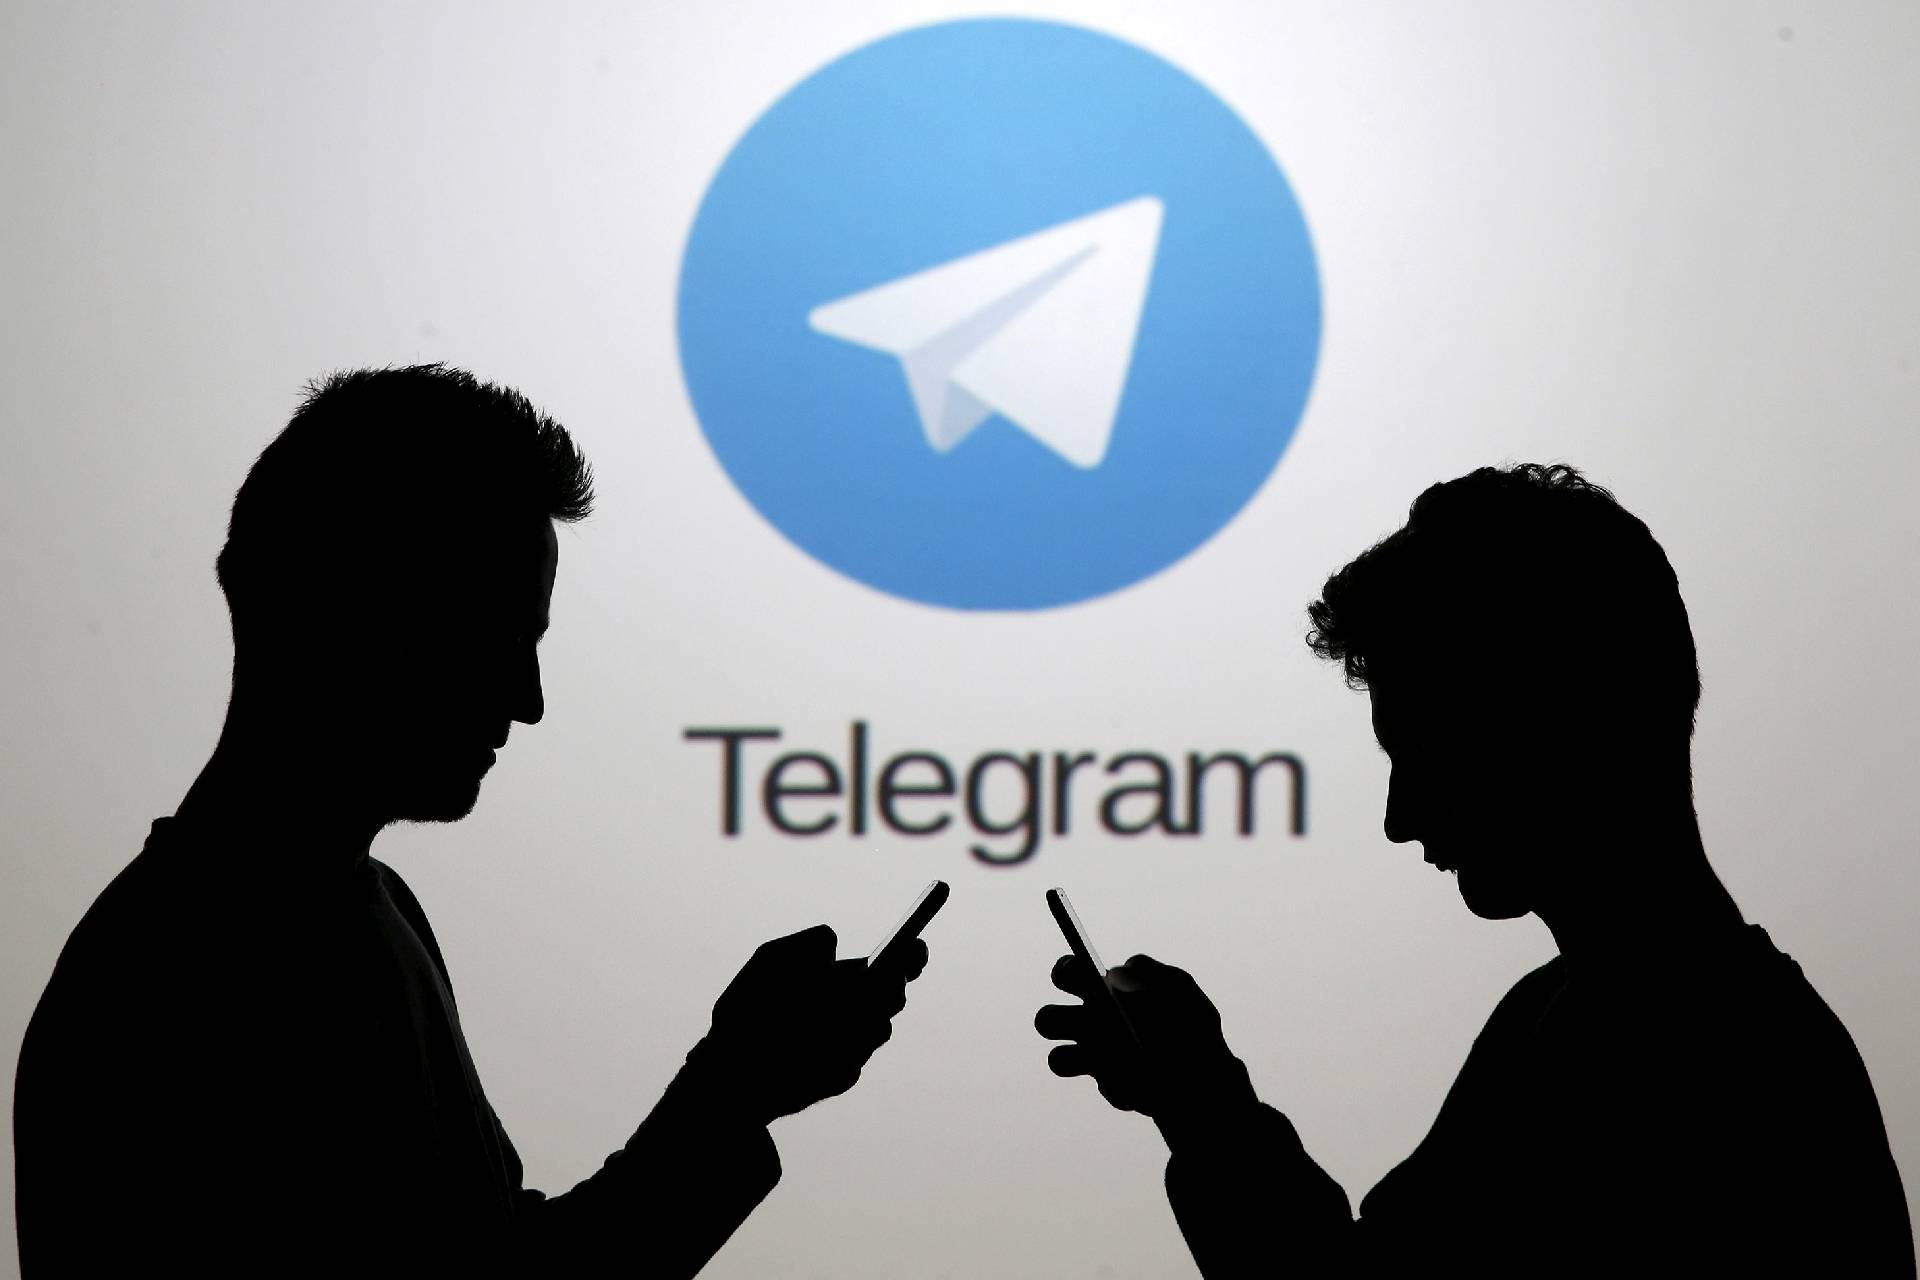 Blockchain Association Supports Telegram in Legal Battle With SEC